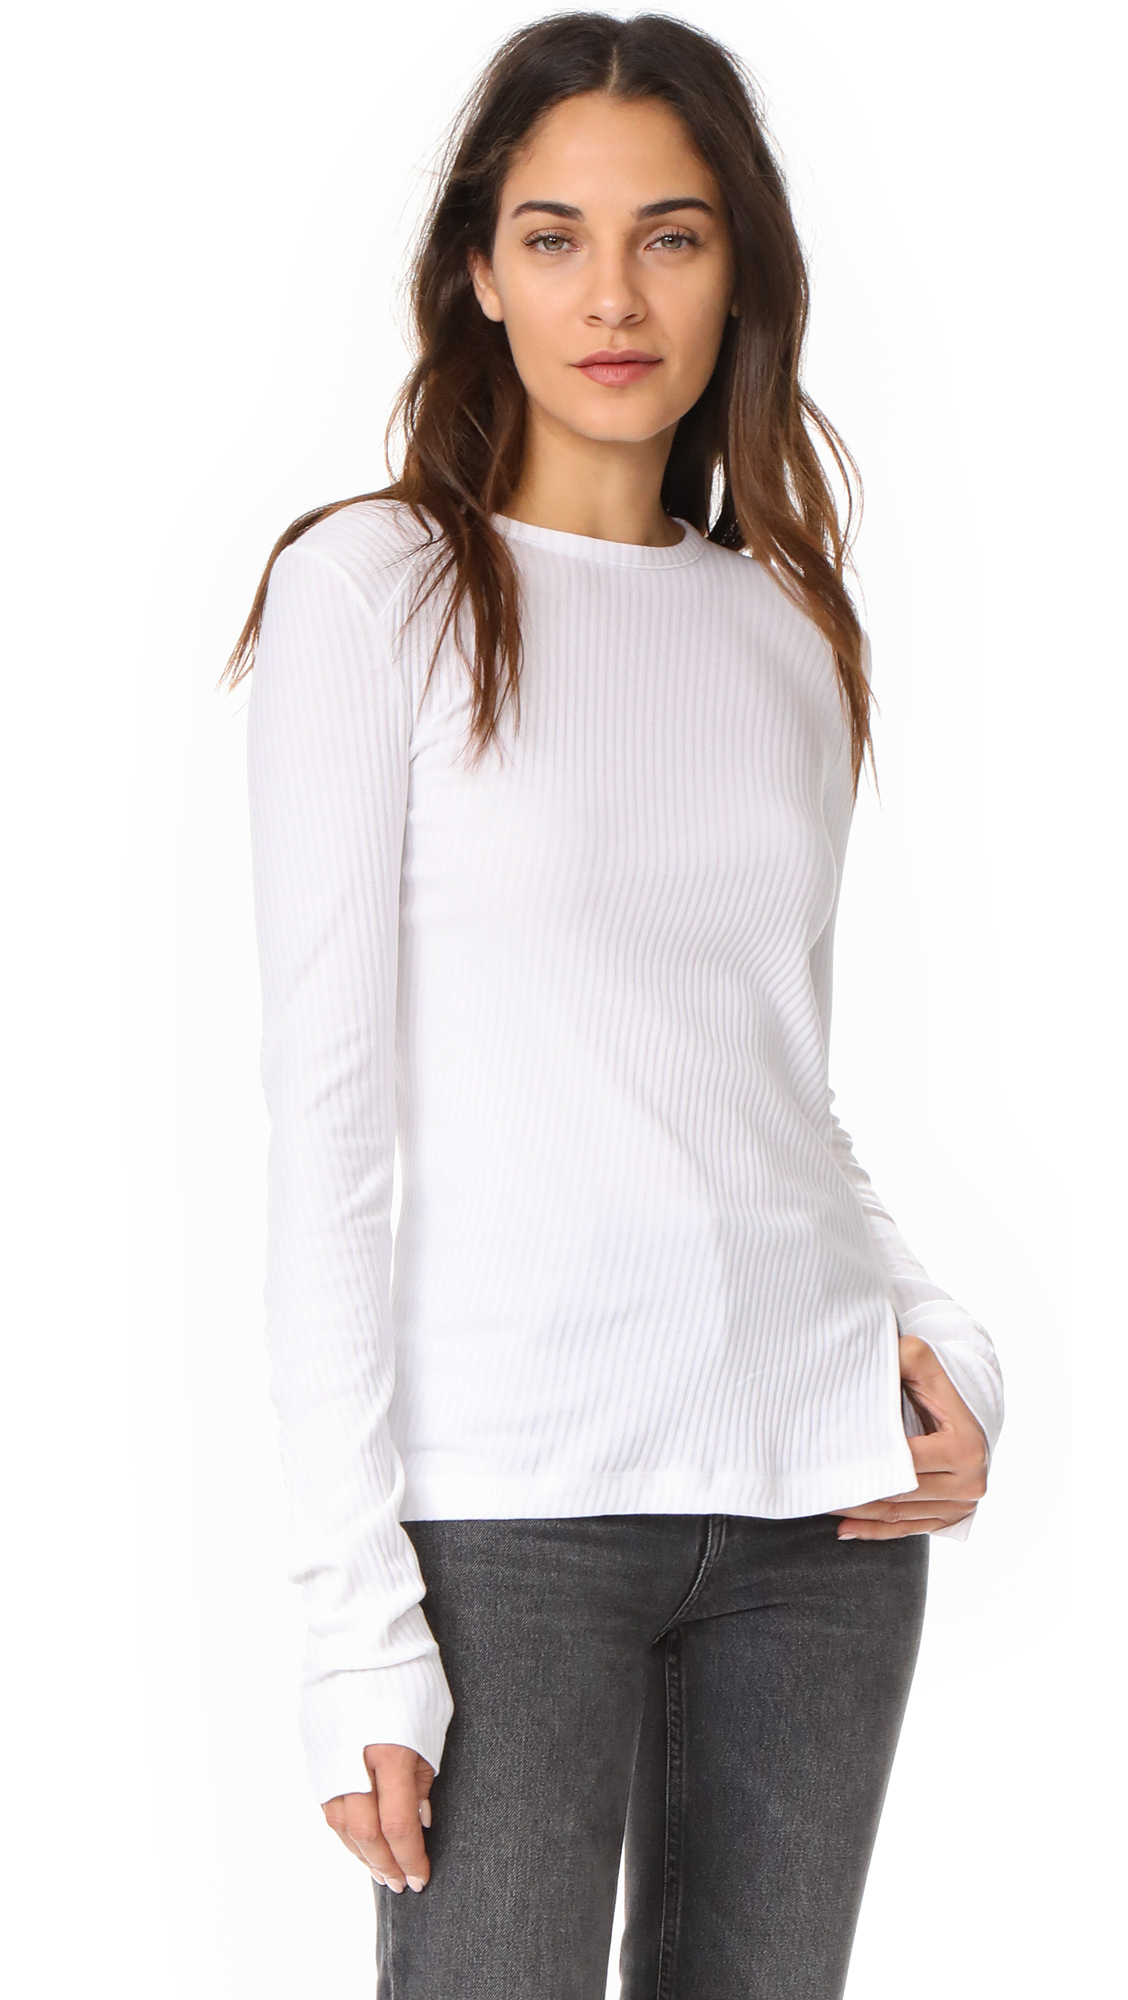 Helmut Lang Deconstructed Long Sleeve Tee - White